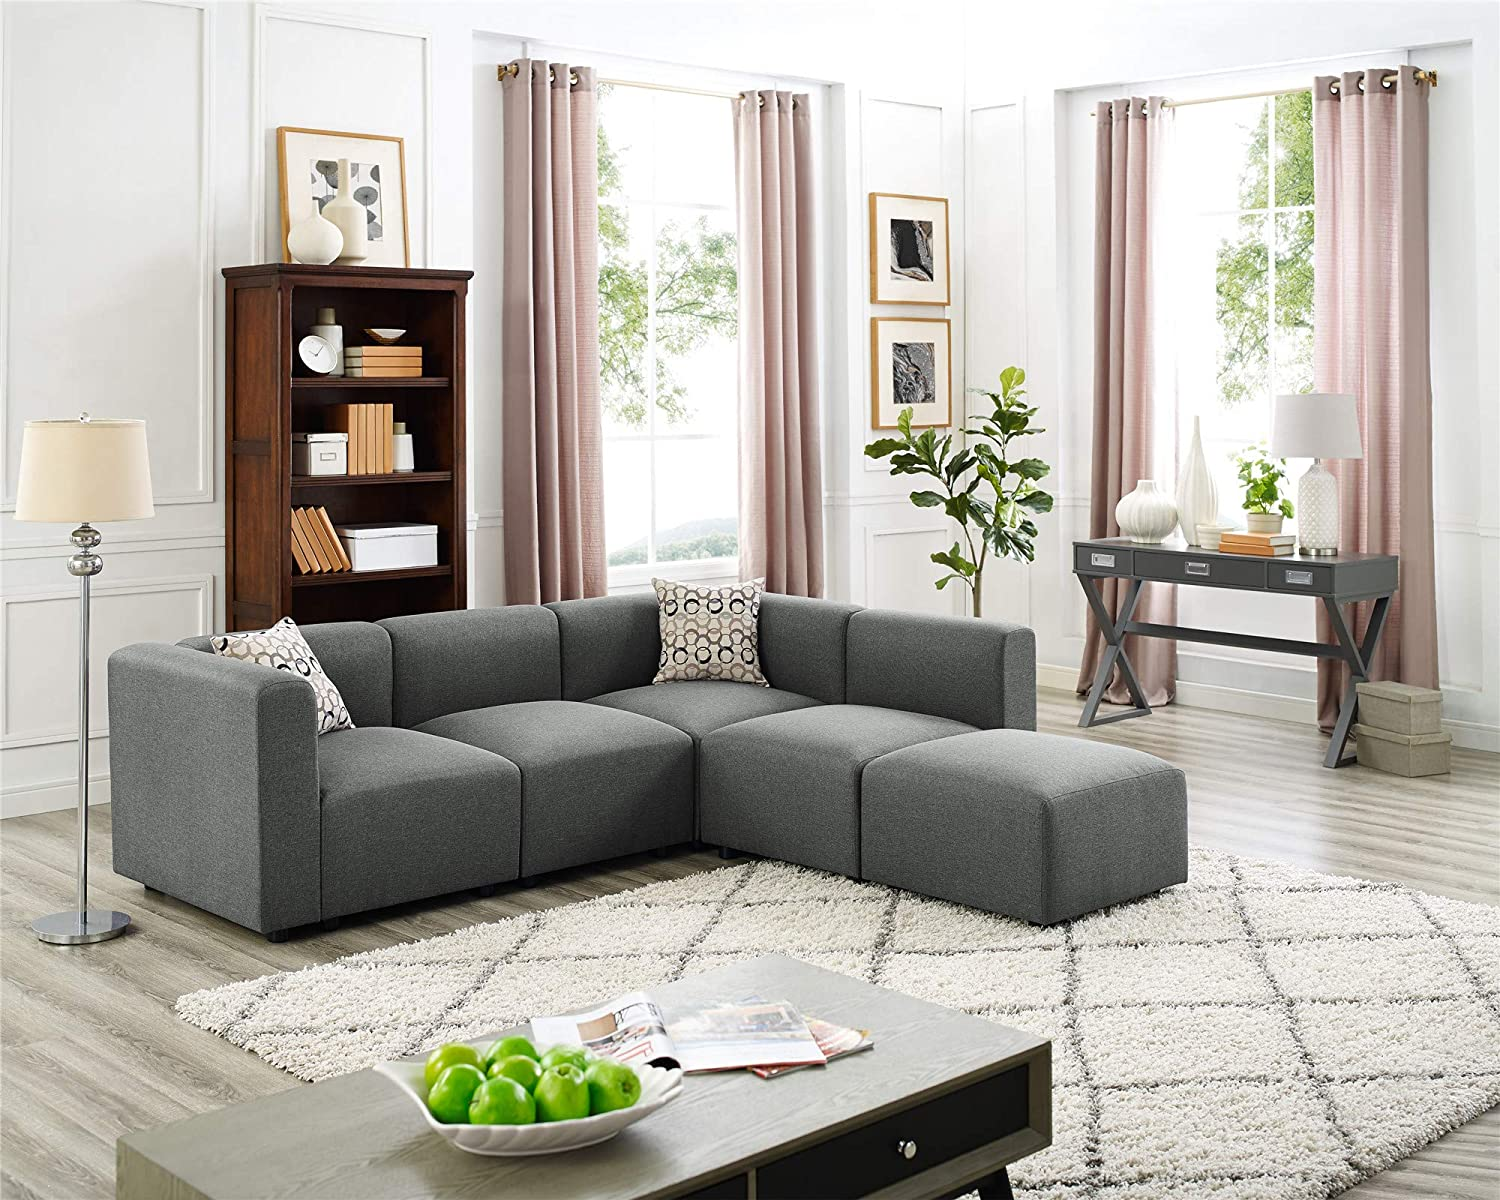 Amazon.com: 3 Seat Couches with Ottoman, Left Right Hand L-Shape ...